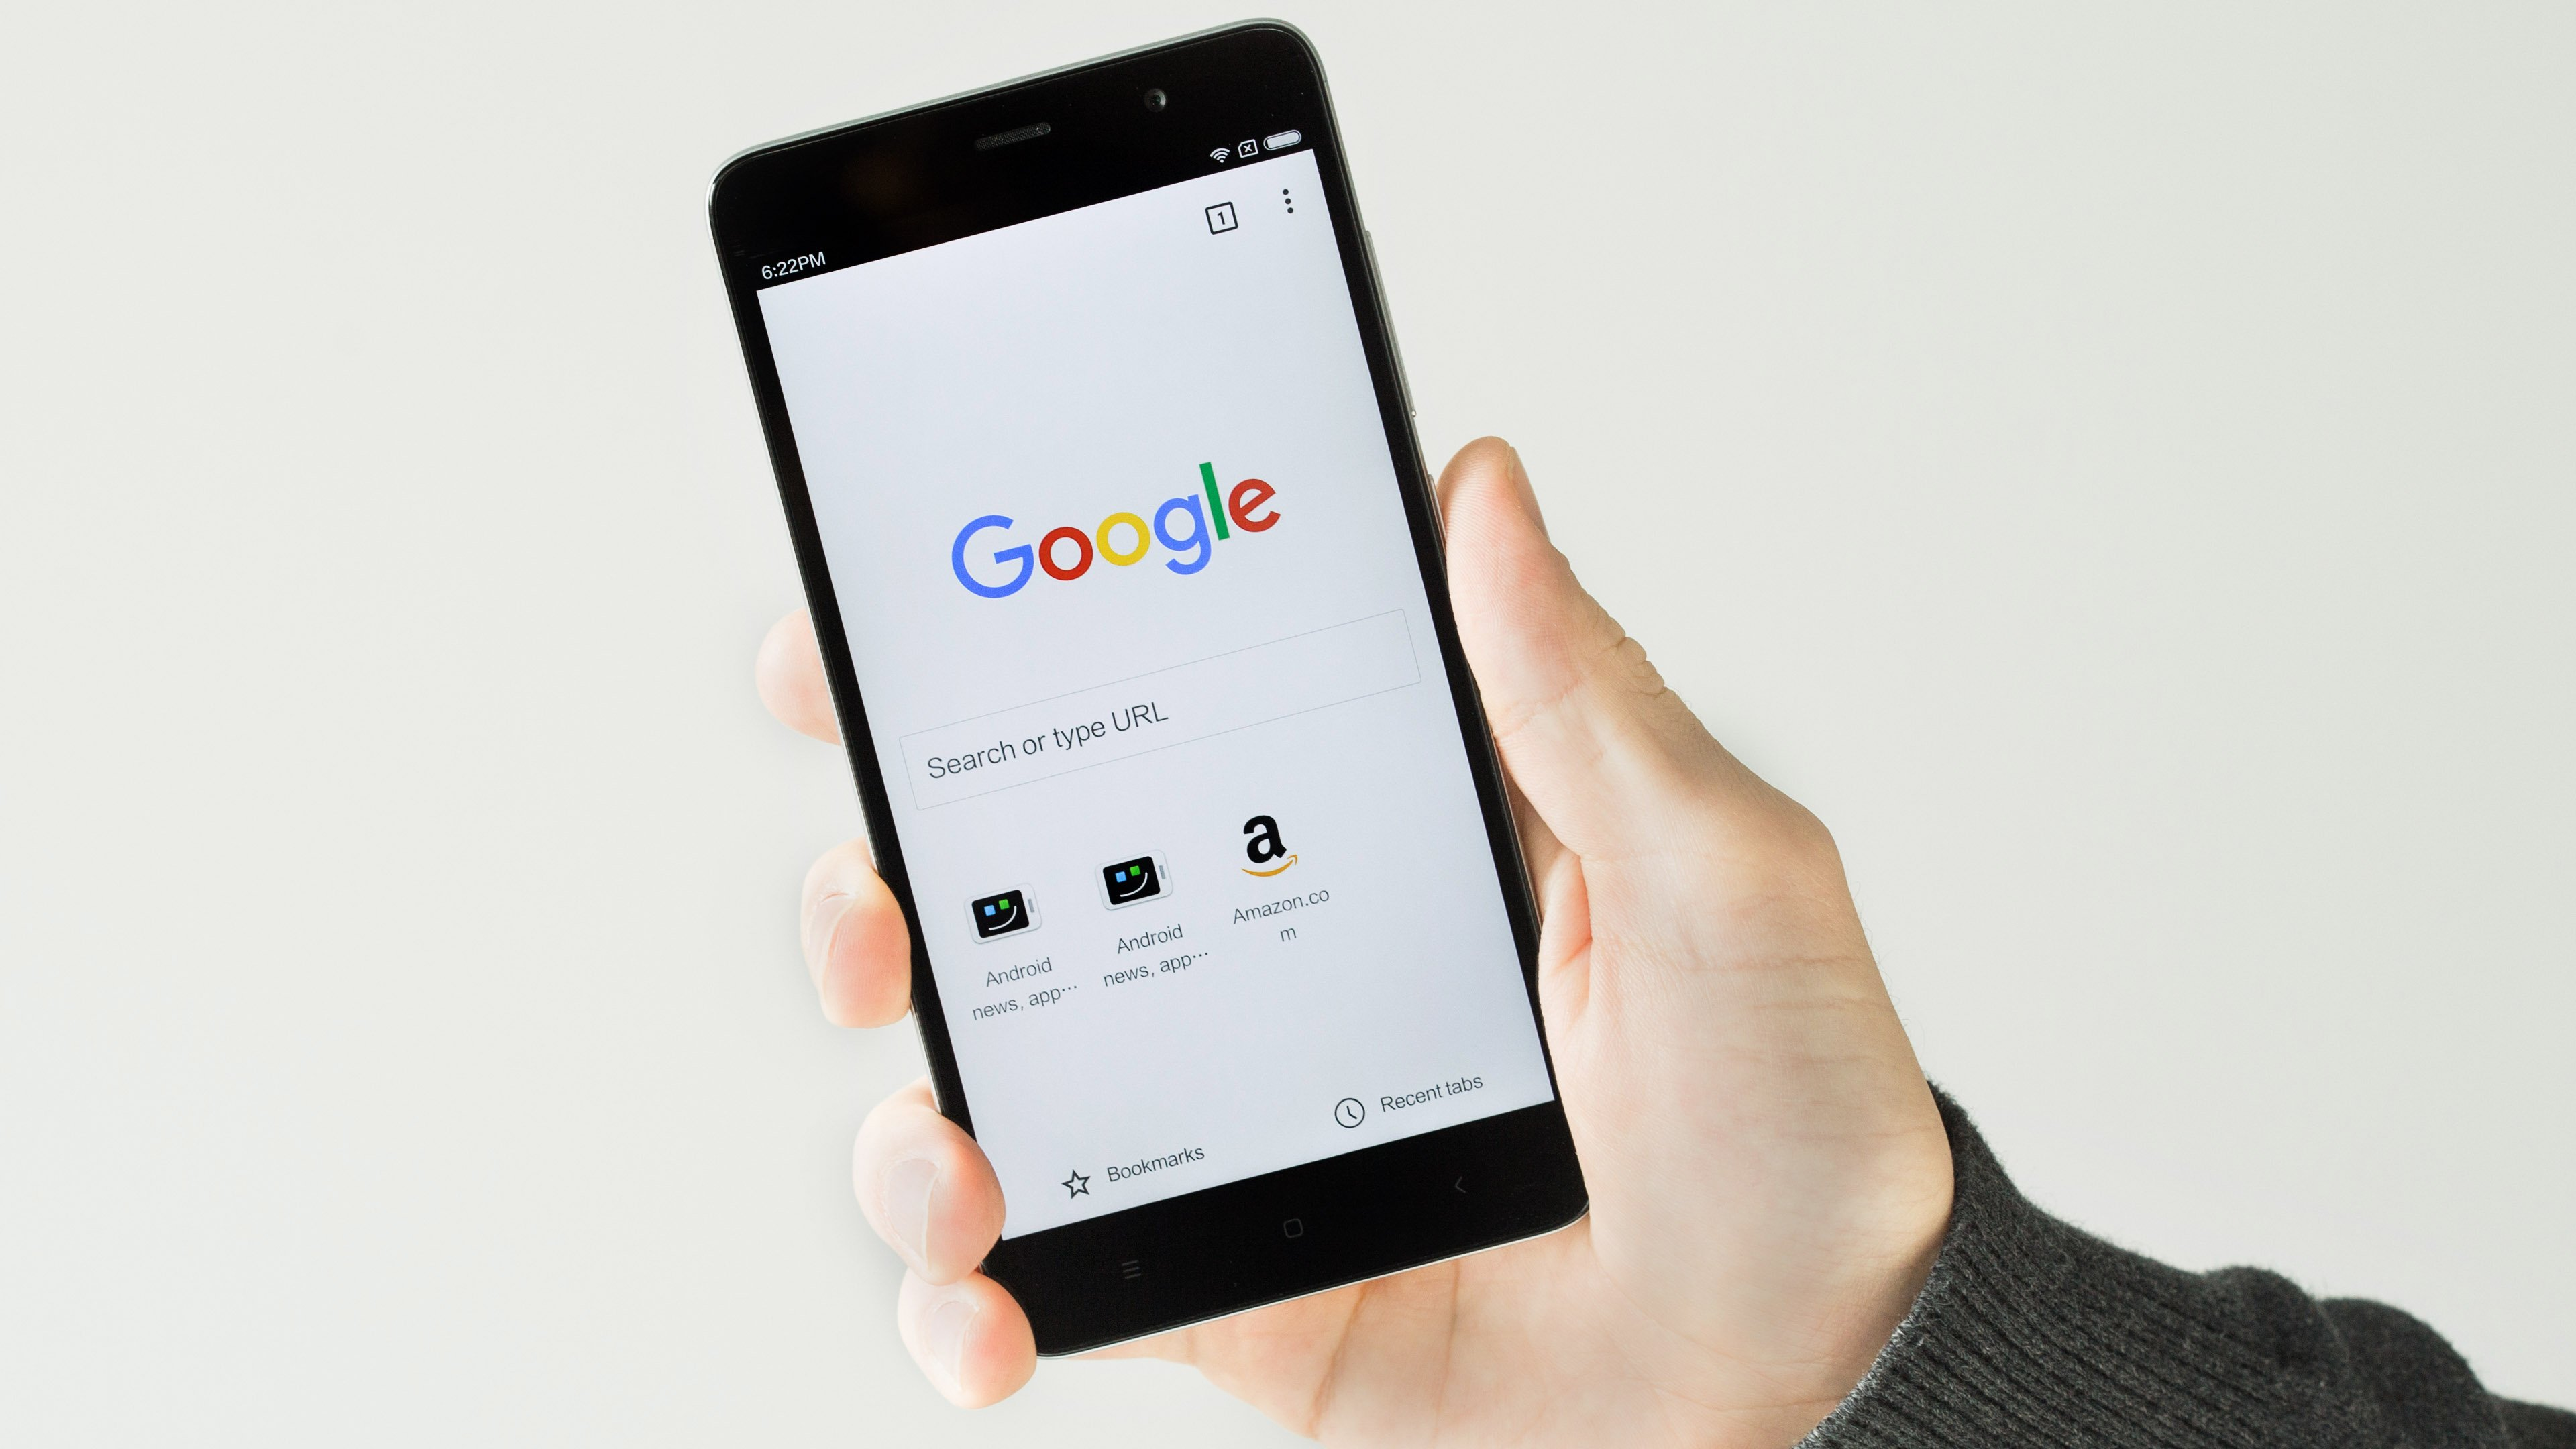 Now surf web on latest Chrome on Android without Internet